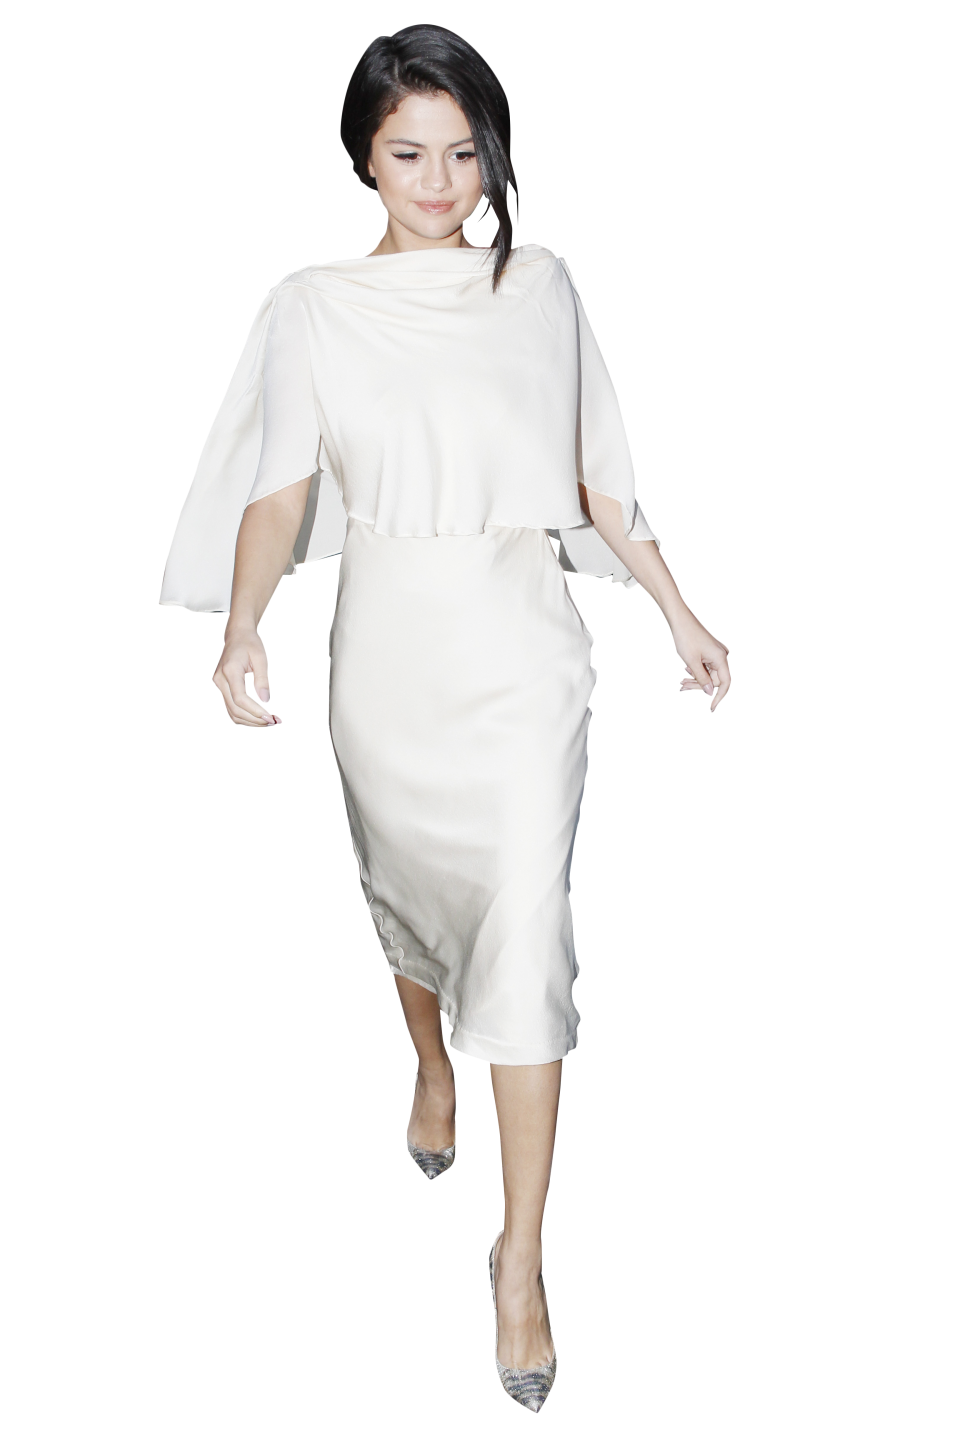 Selena Gomez White Dress Png Image Purepng Free Transparent Cc0 Png Image Library